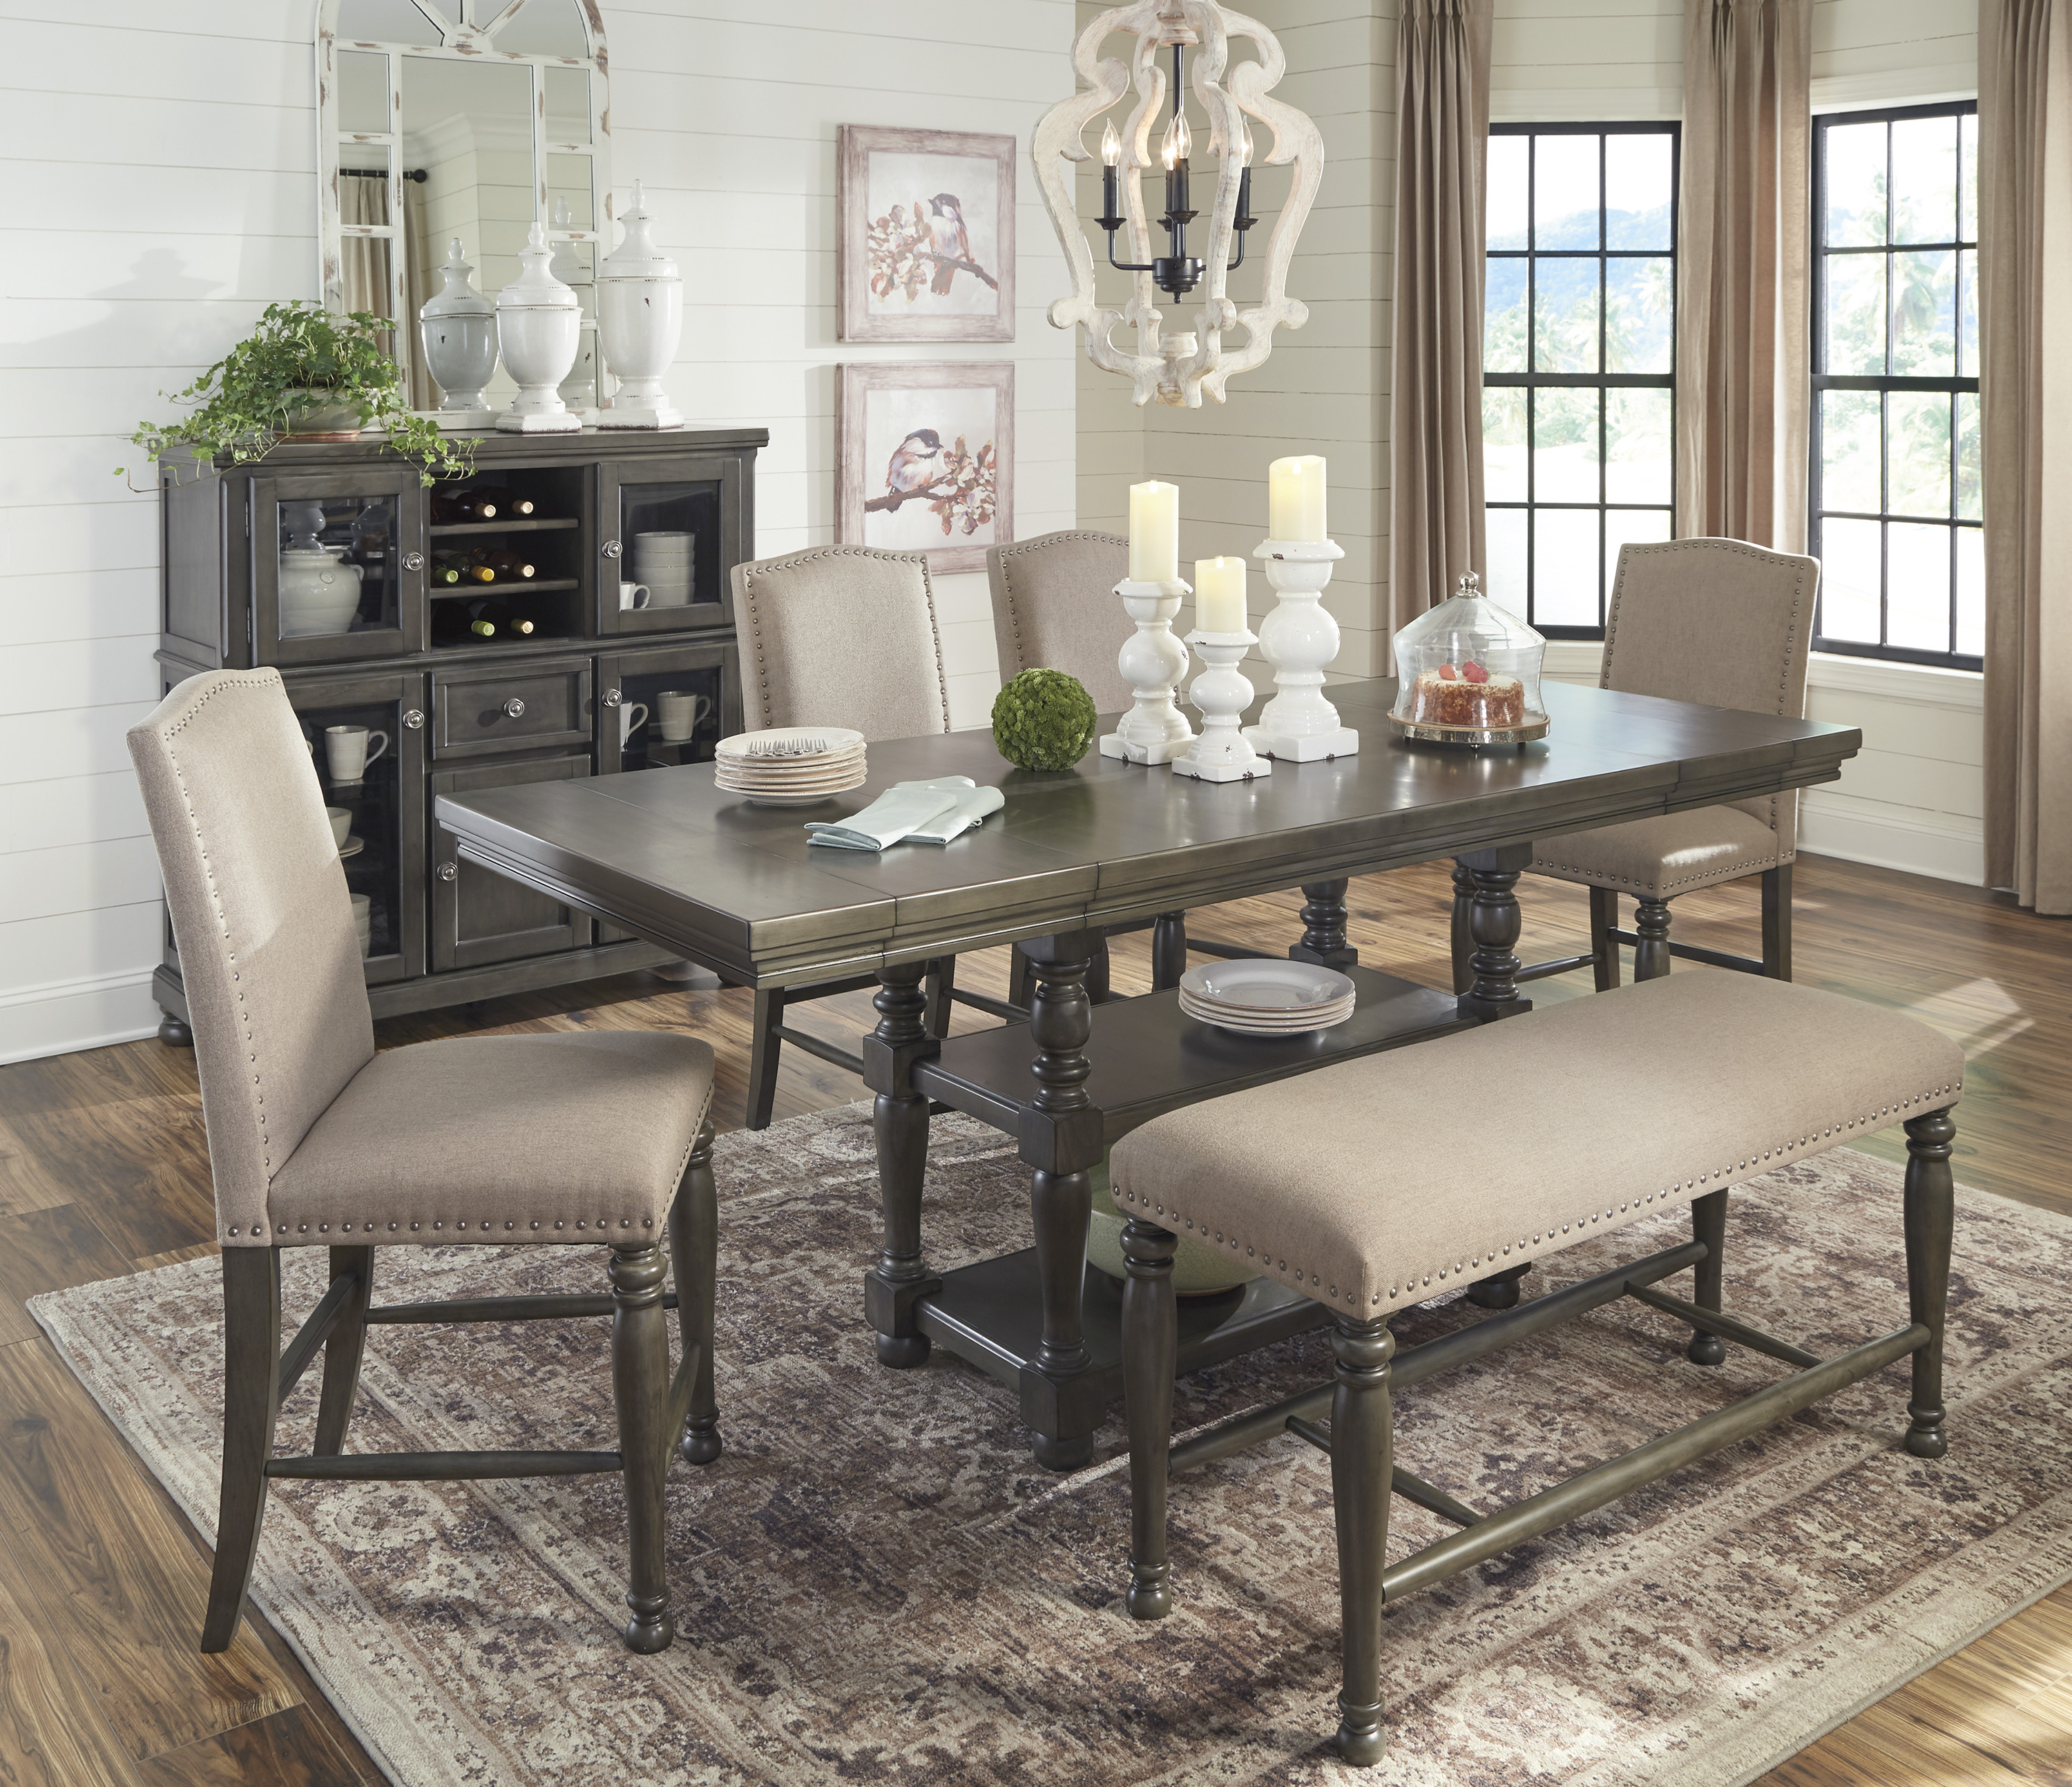 Dining Room Chair Sets Find Great Deals On Ashley Dining Room Furniture In Philadelphia Pa